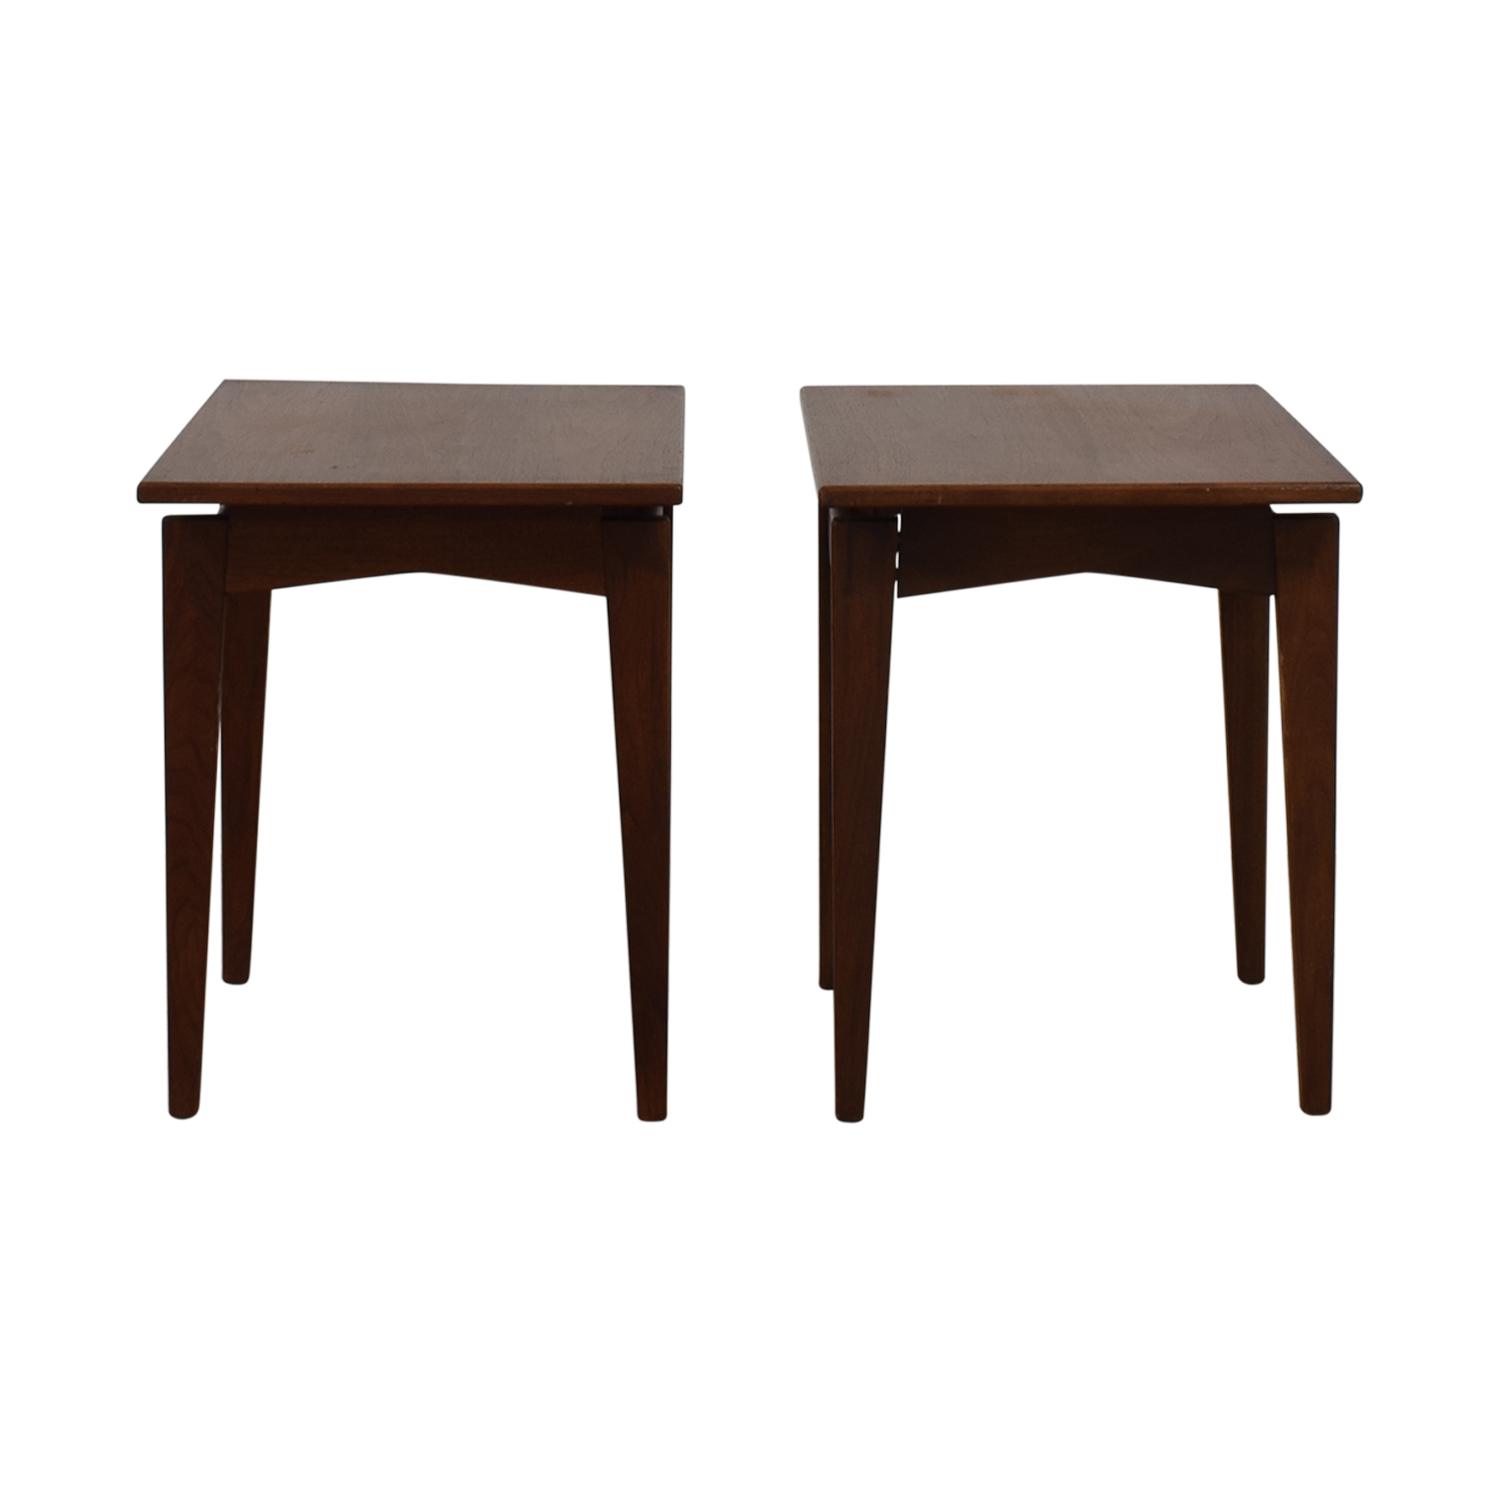 Jens Risom Jens Risom Wood End Tables price